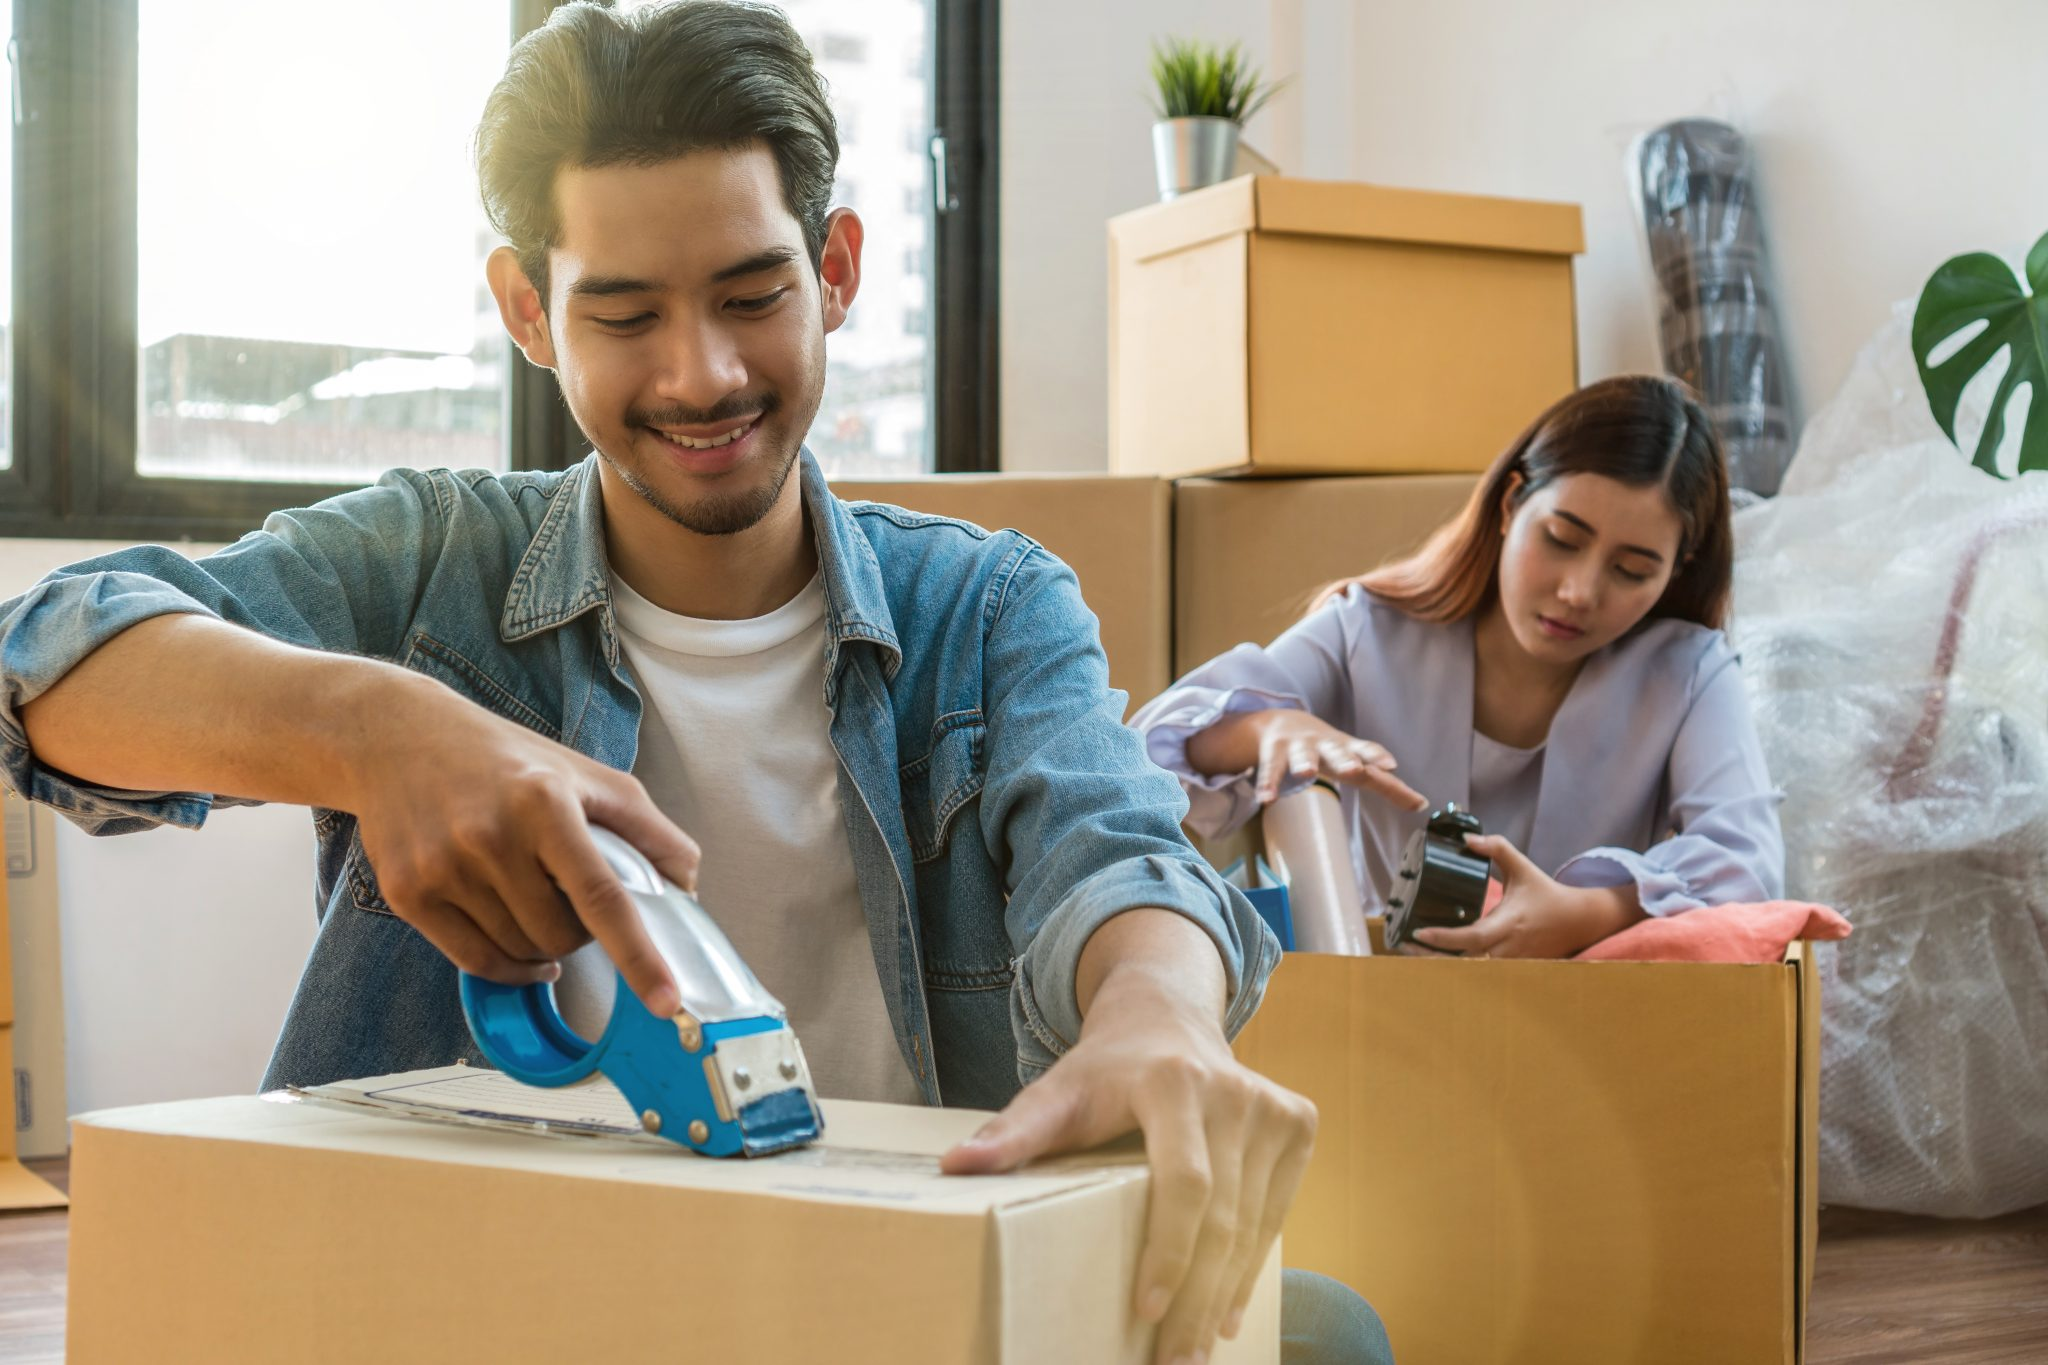 Upcoming Household Move? Follow These Tips To Reduce The Stress